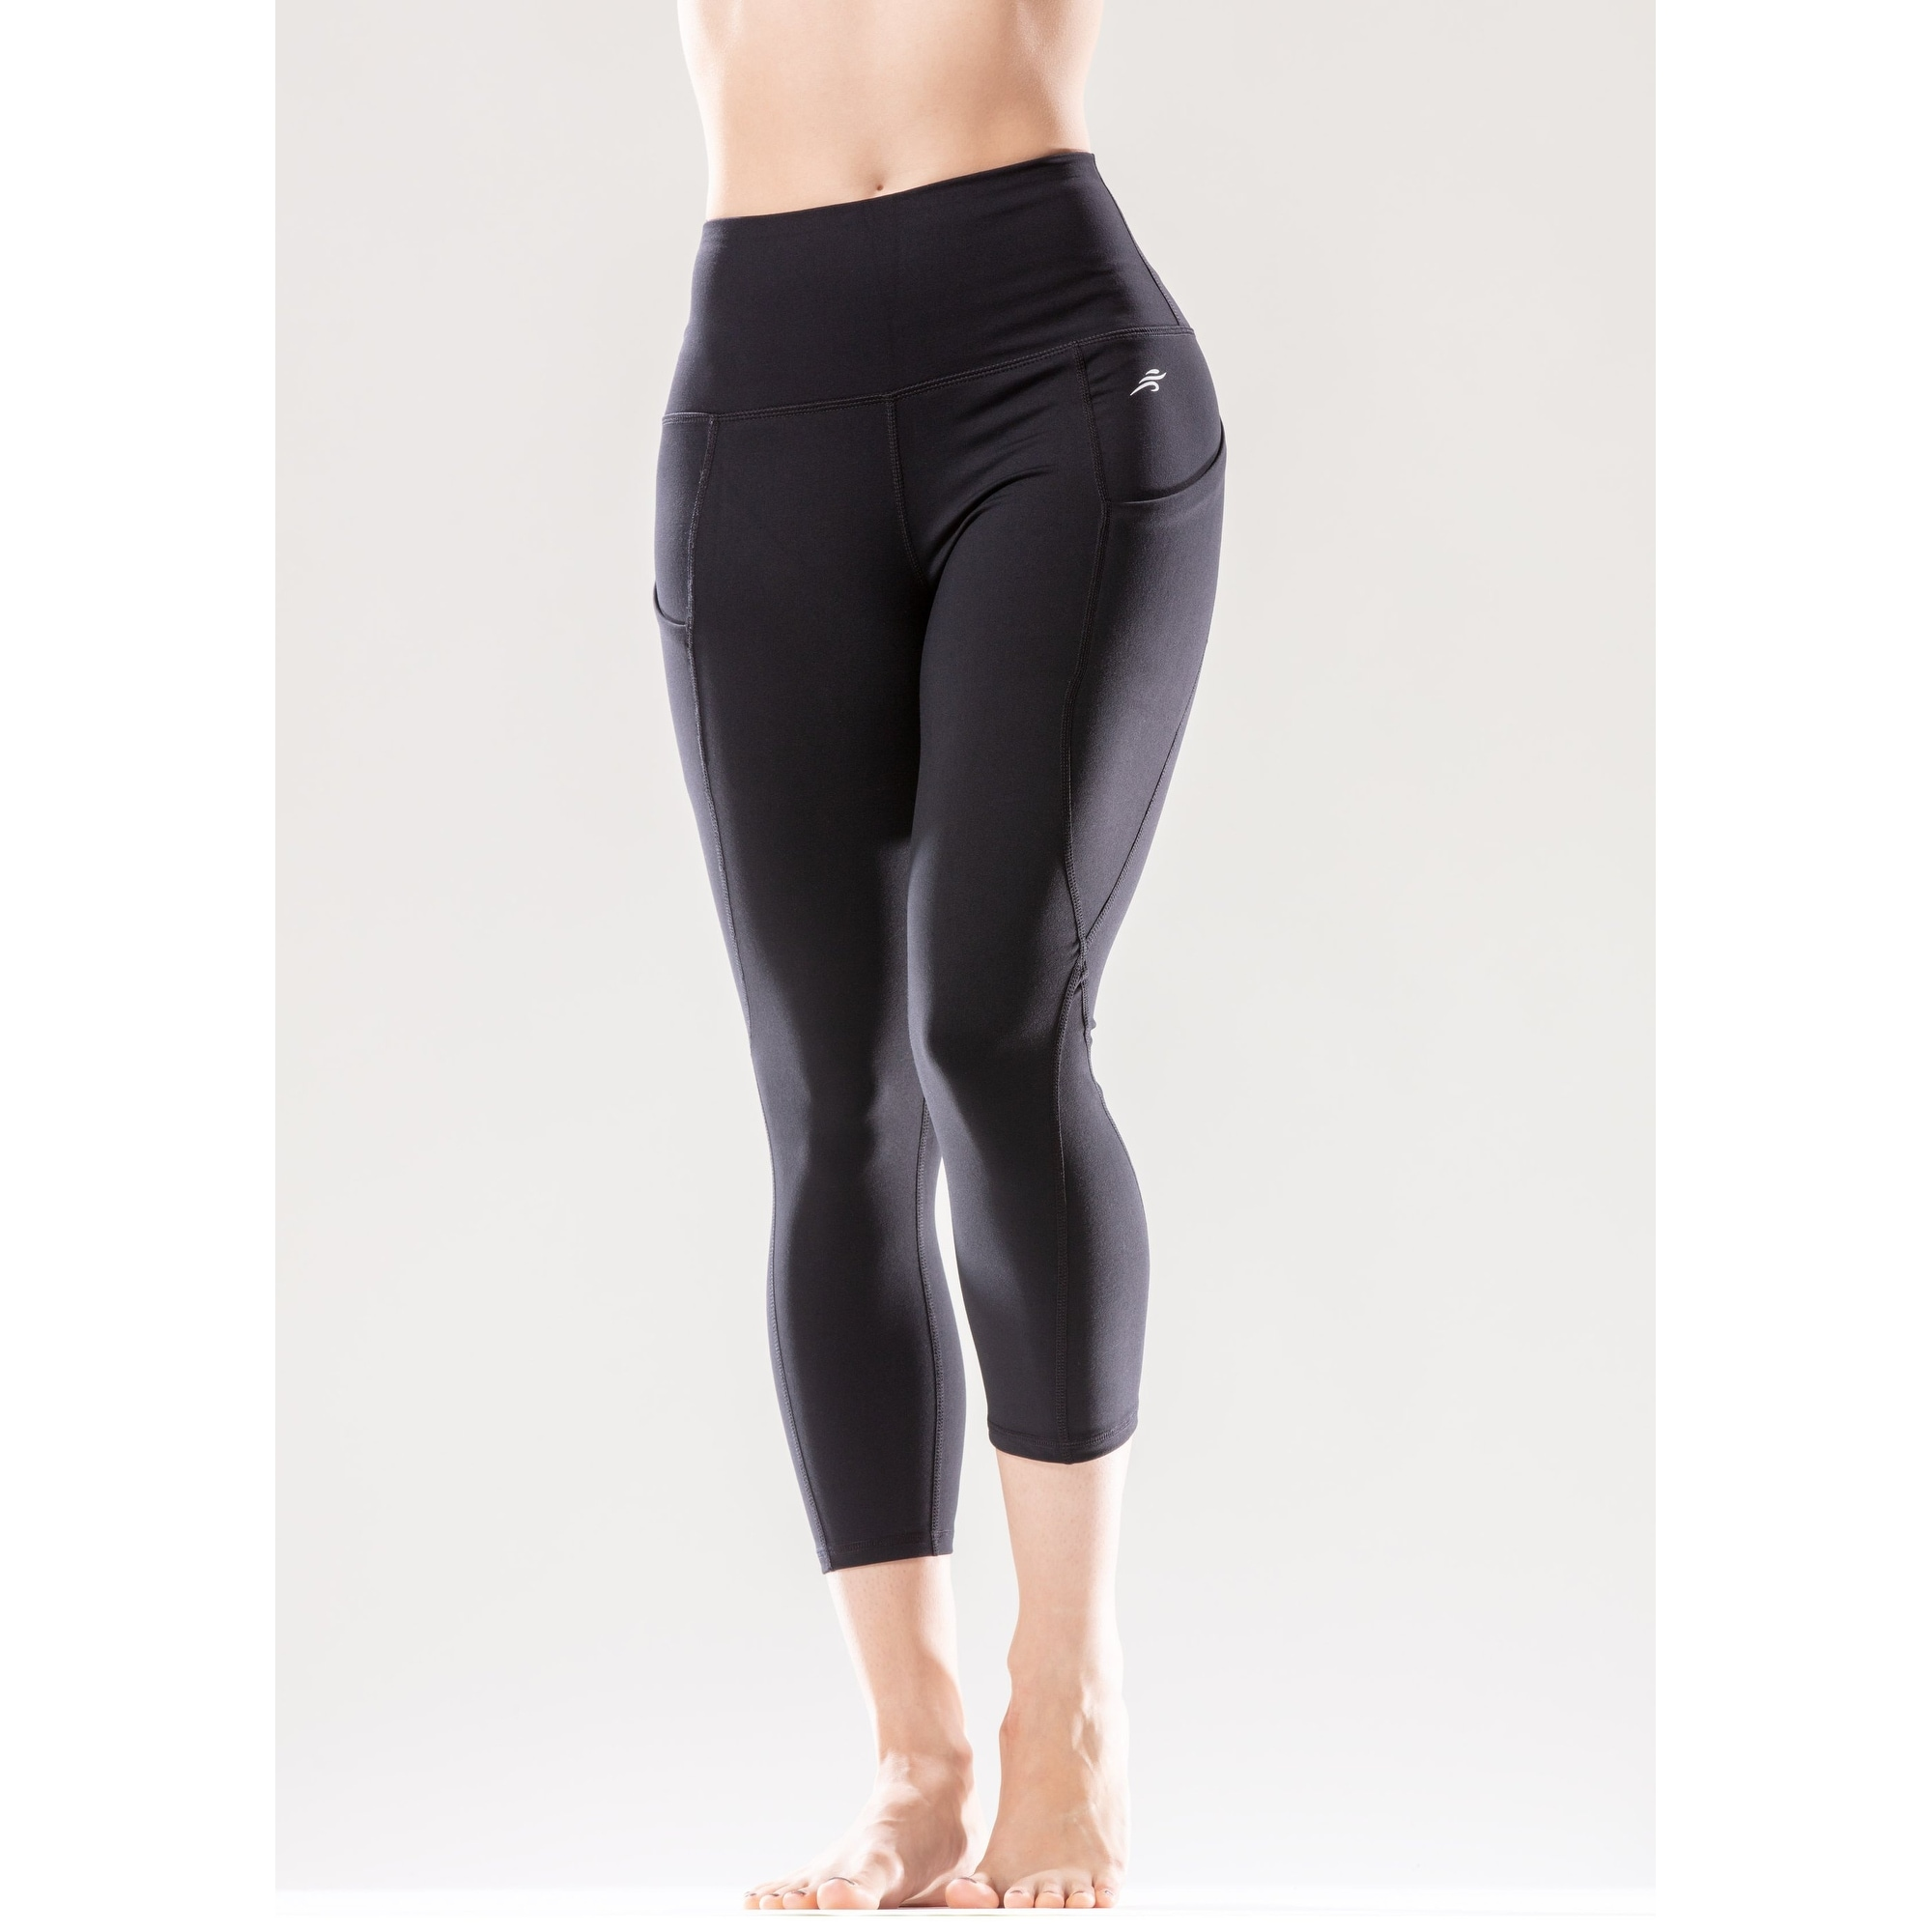 Shop High Waisted Flexible Capri Leggings With Hip Pockets Overstock 27731452